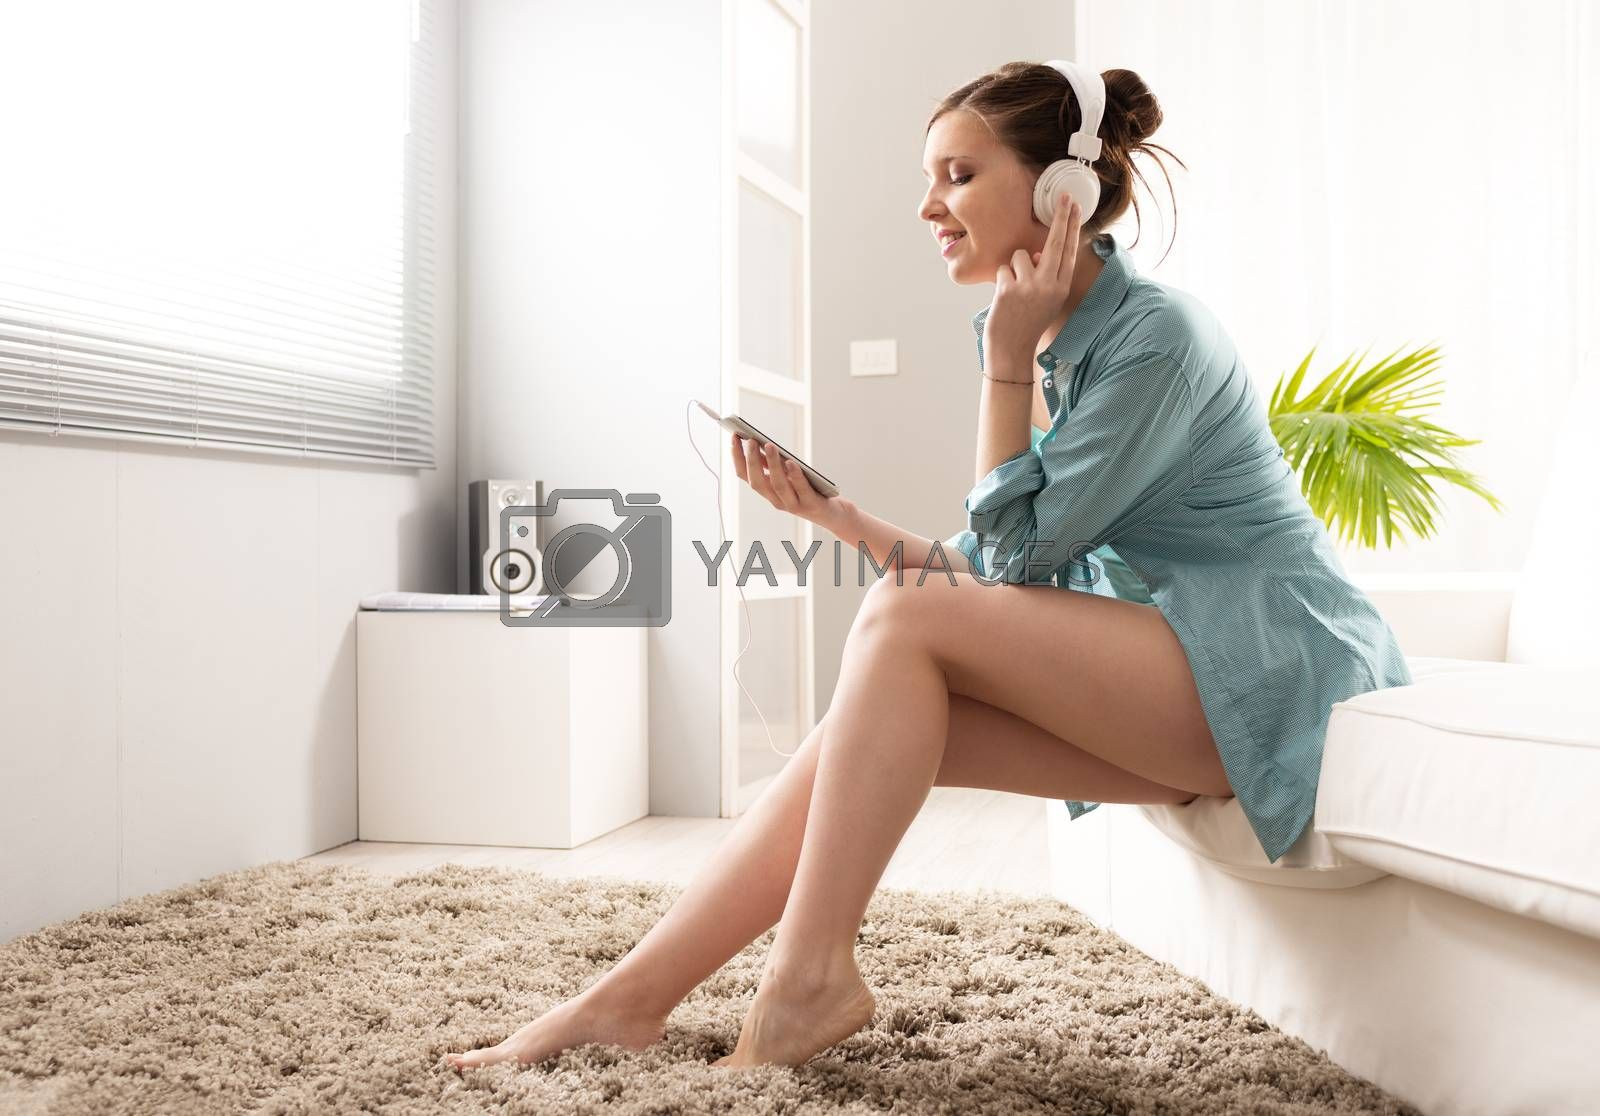 Girl listening to music on mp3 player with headphones.